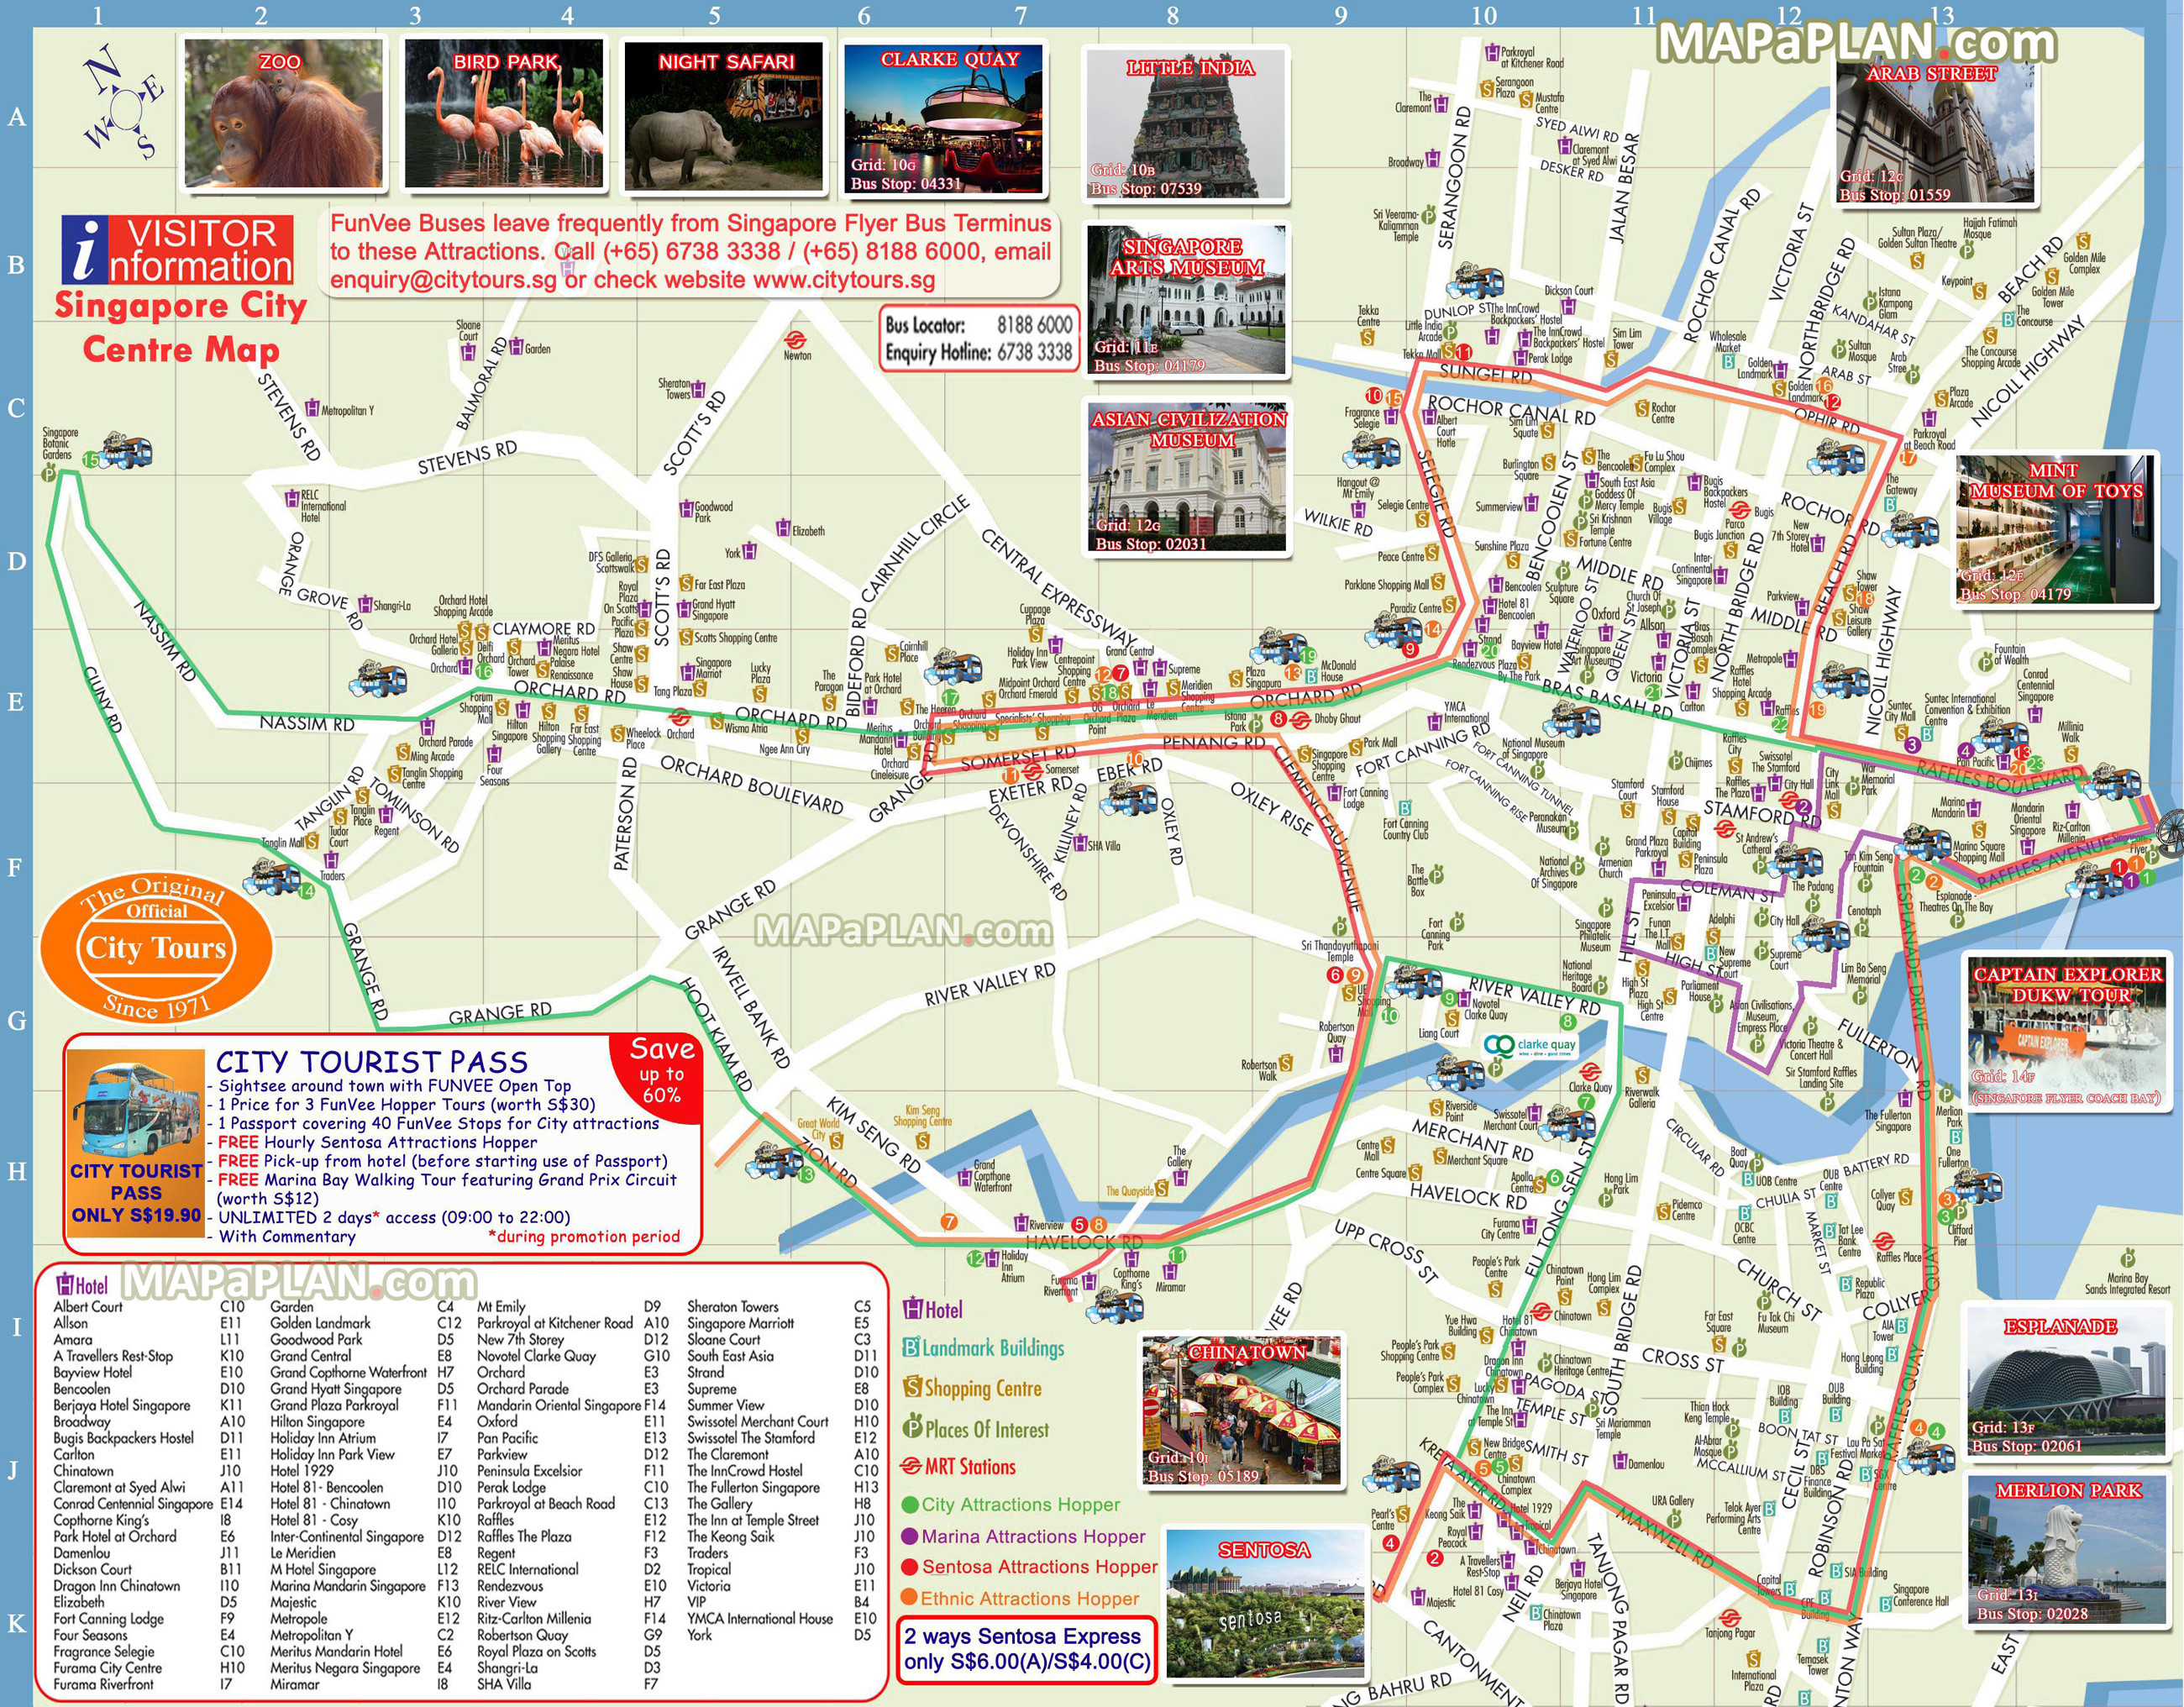 Wet N Wild Printable Map Fresh Singapore Maps Top Tourist Attractions Free Printable City